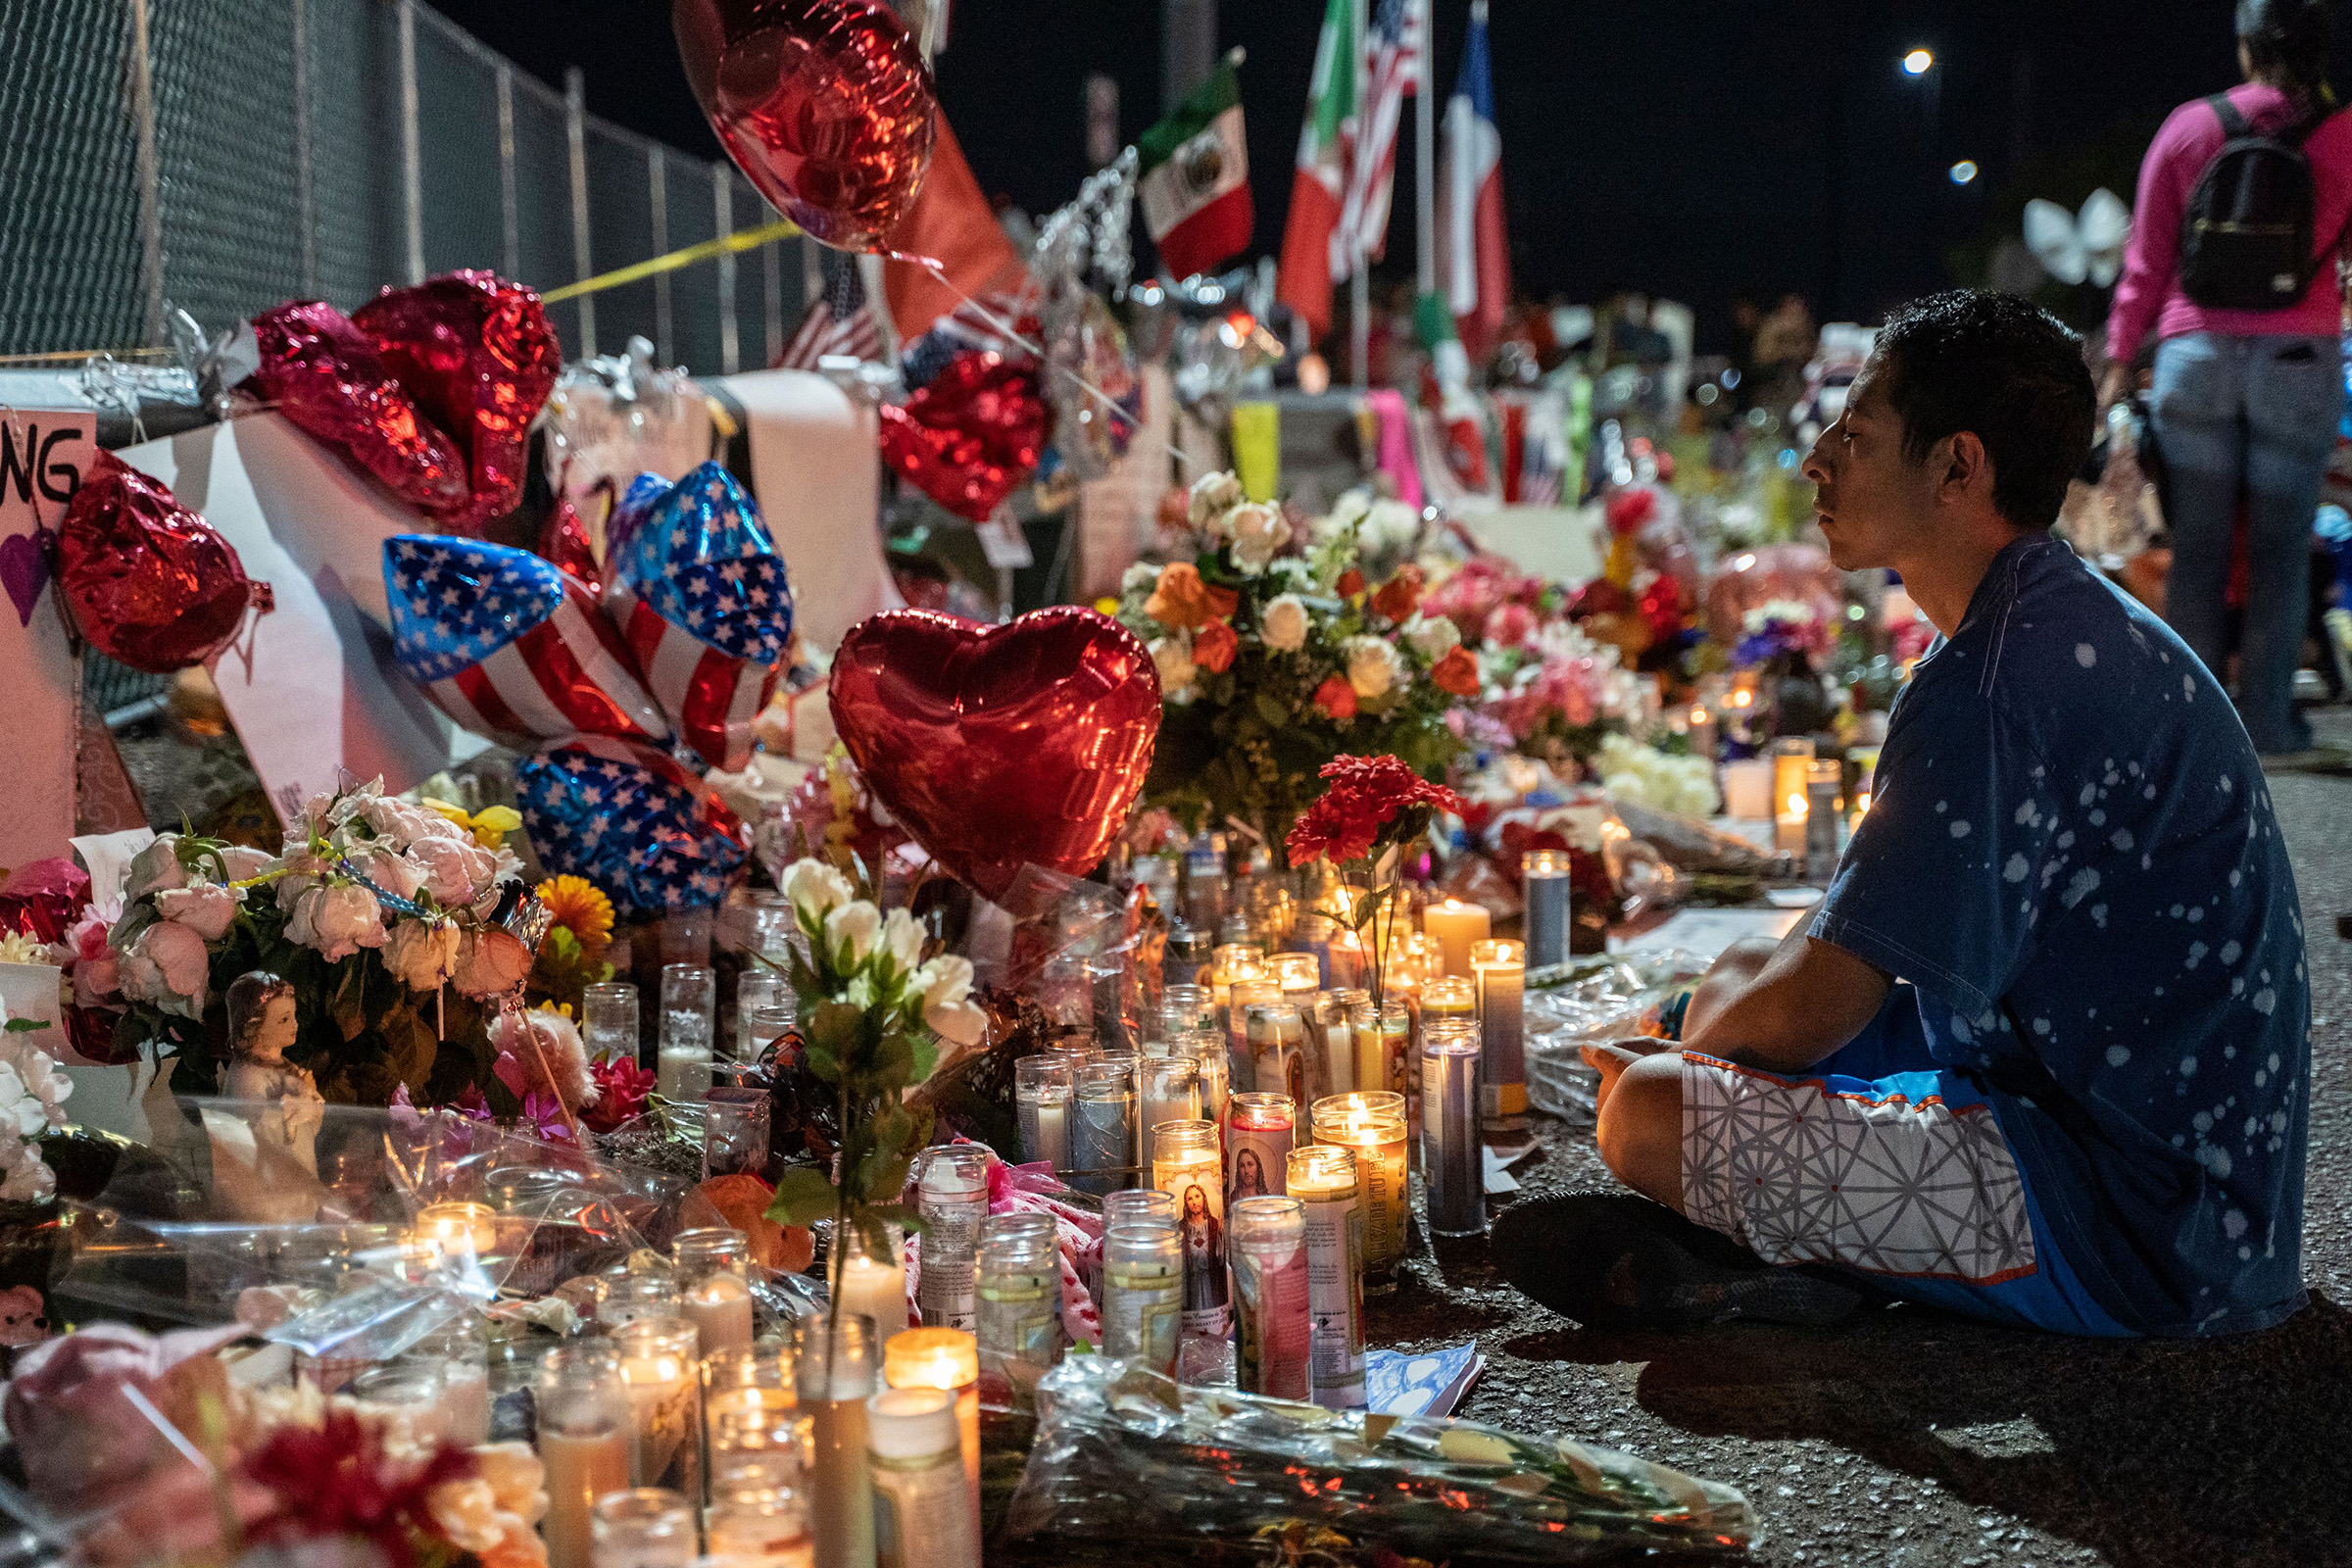 Abel Valenzuela meditates in front of the makeshift memorial for shooting victims at the Cielo Vista Mall Walmart in El Paso, Texas on August 8, 2019.